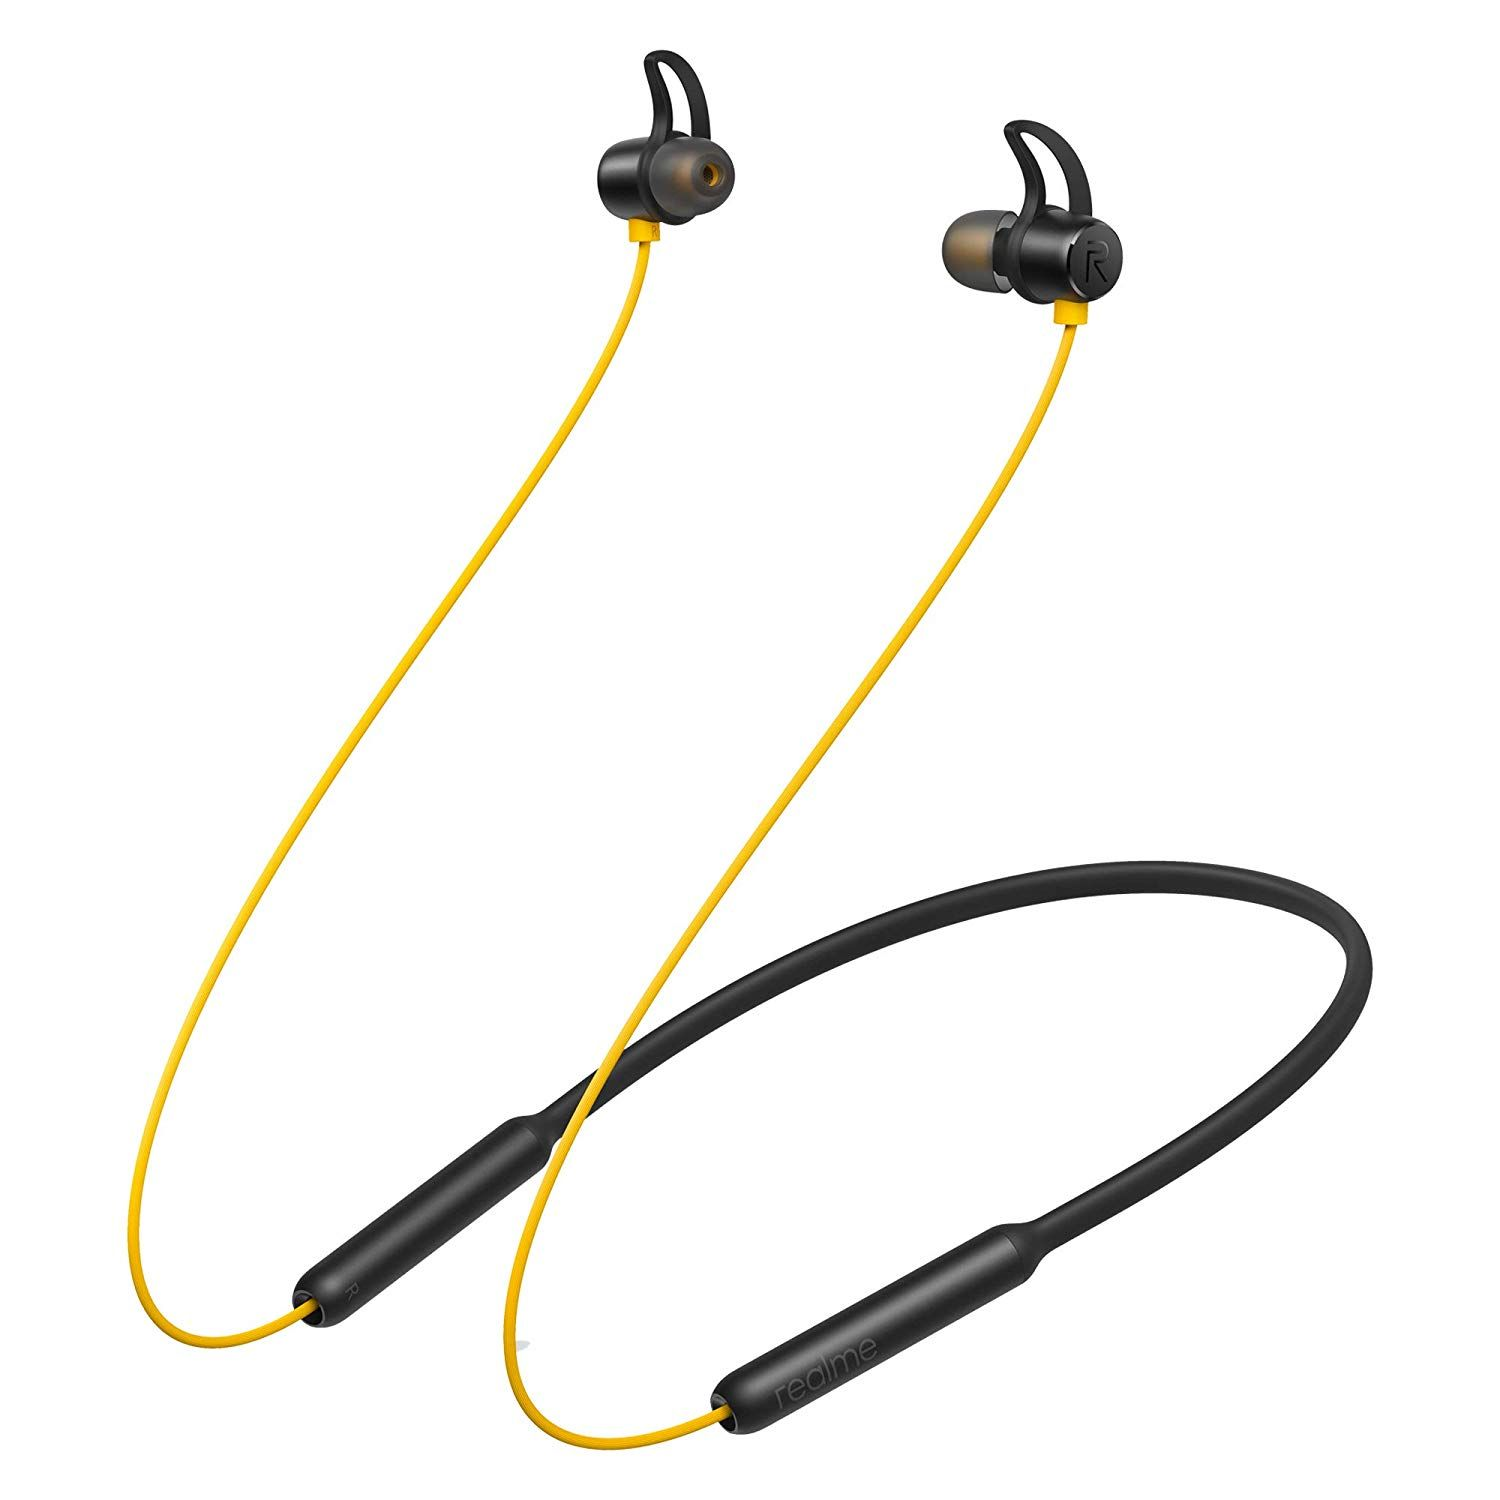 Realme Buds Wireless Bluetooth Headset Lowest Price In India 2020 Full Specification Features Wireless Bluetooth Wireless Earphones Mobile Accessories